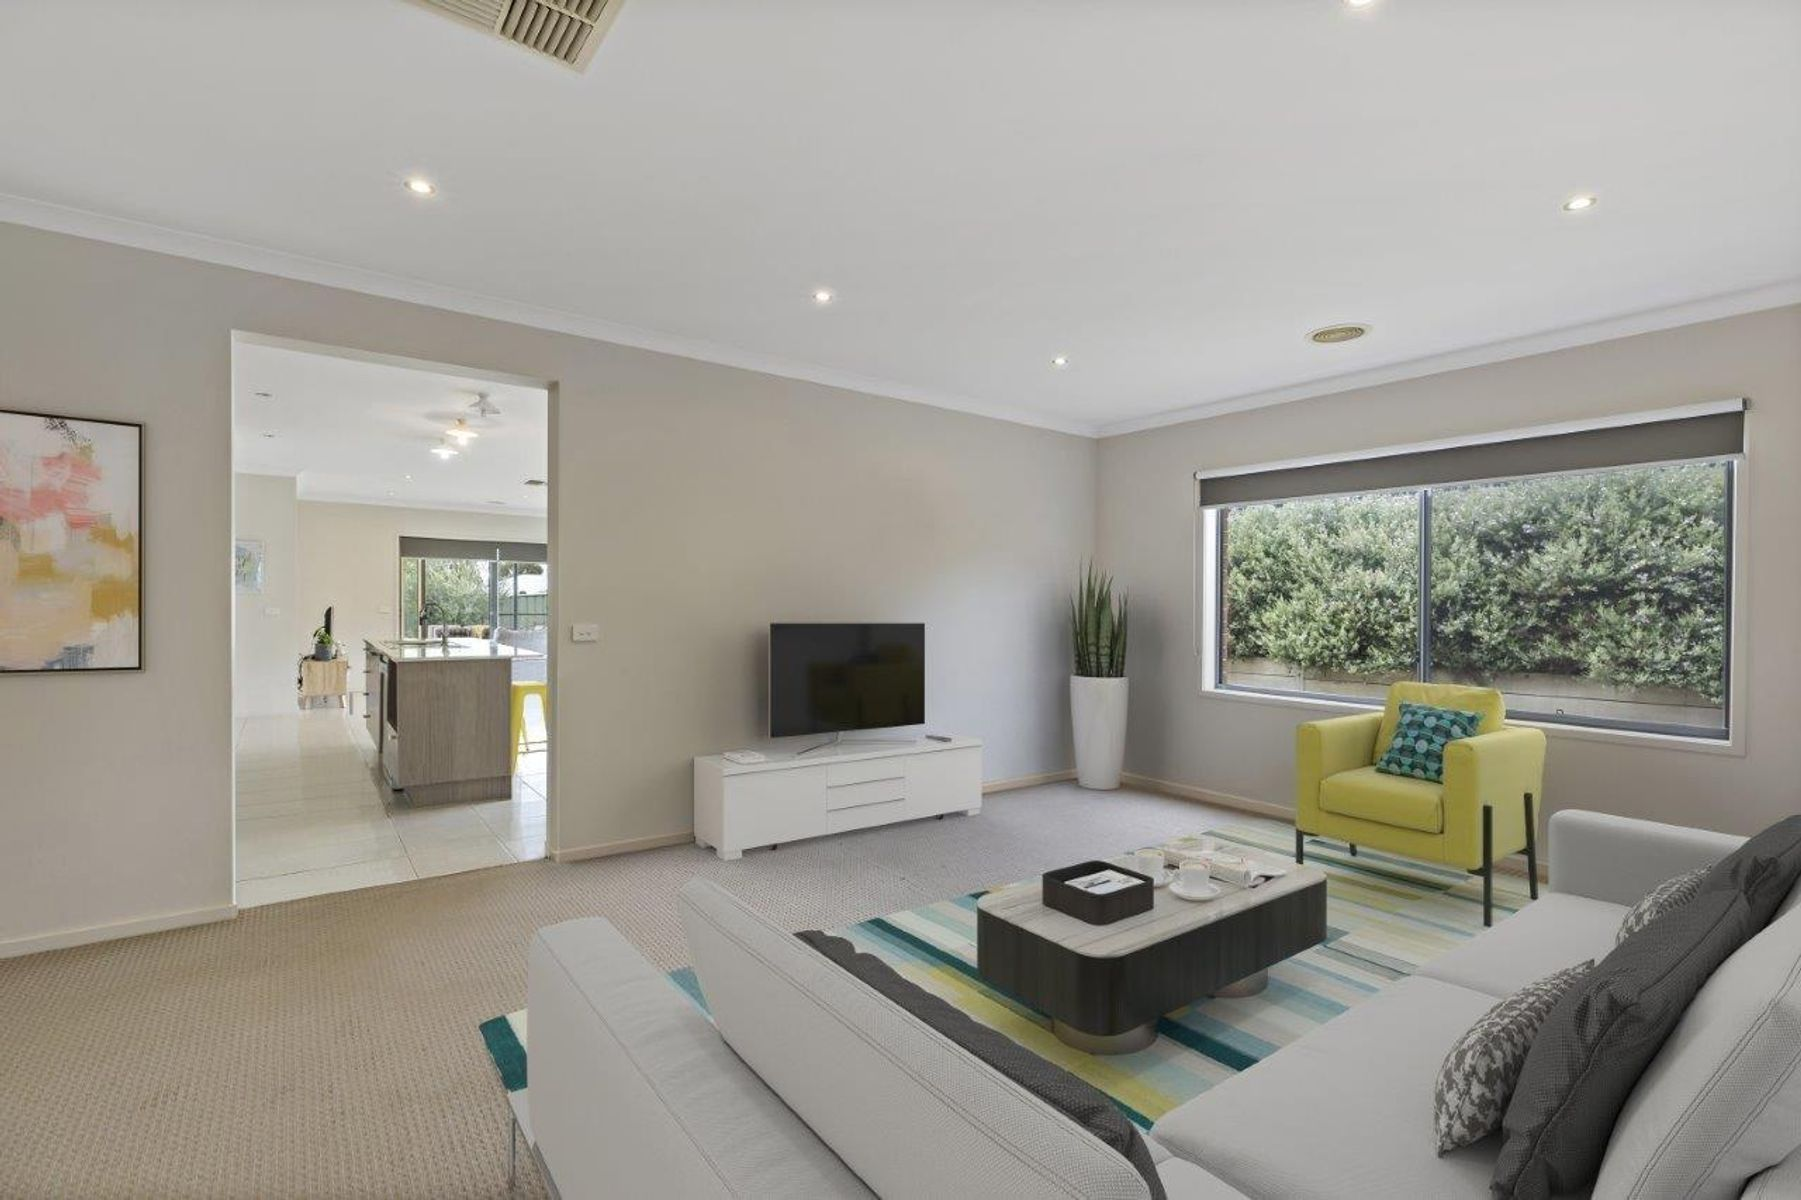 54 Lower Beckhams Road, Maiden Gully, VIC 3551